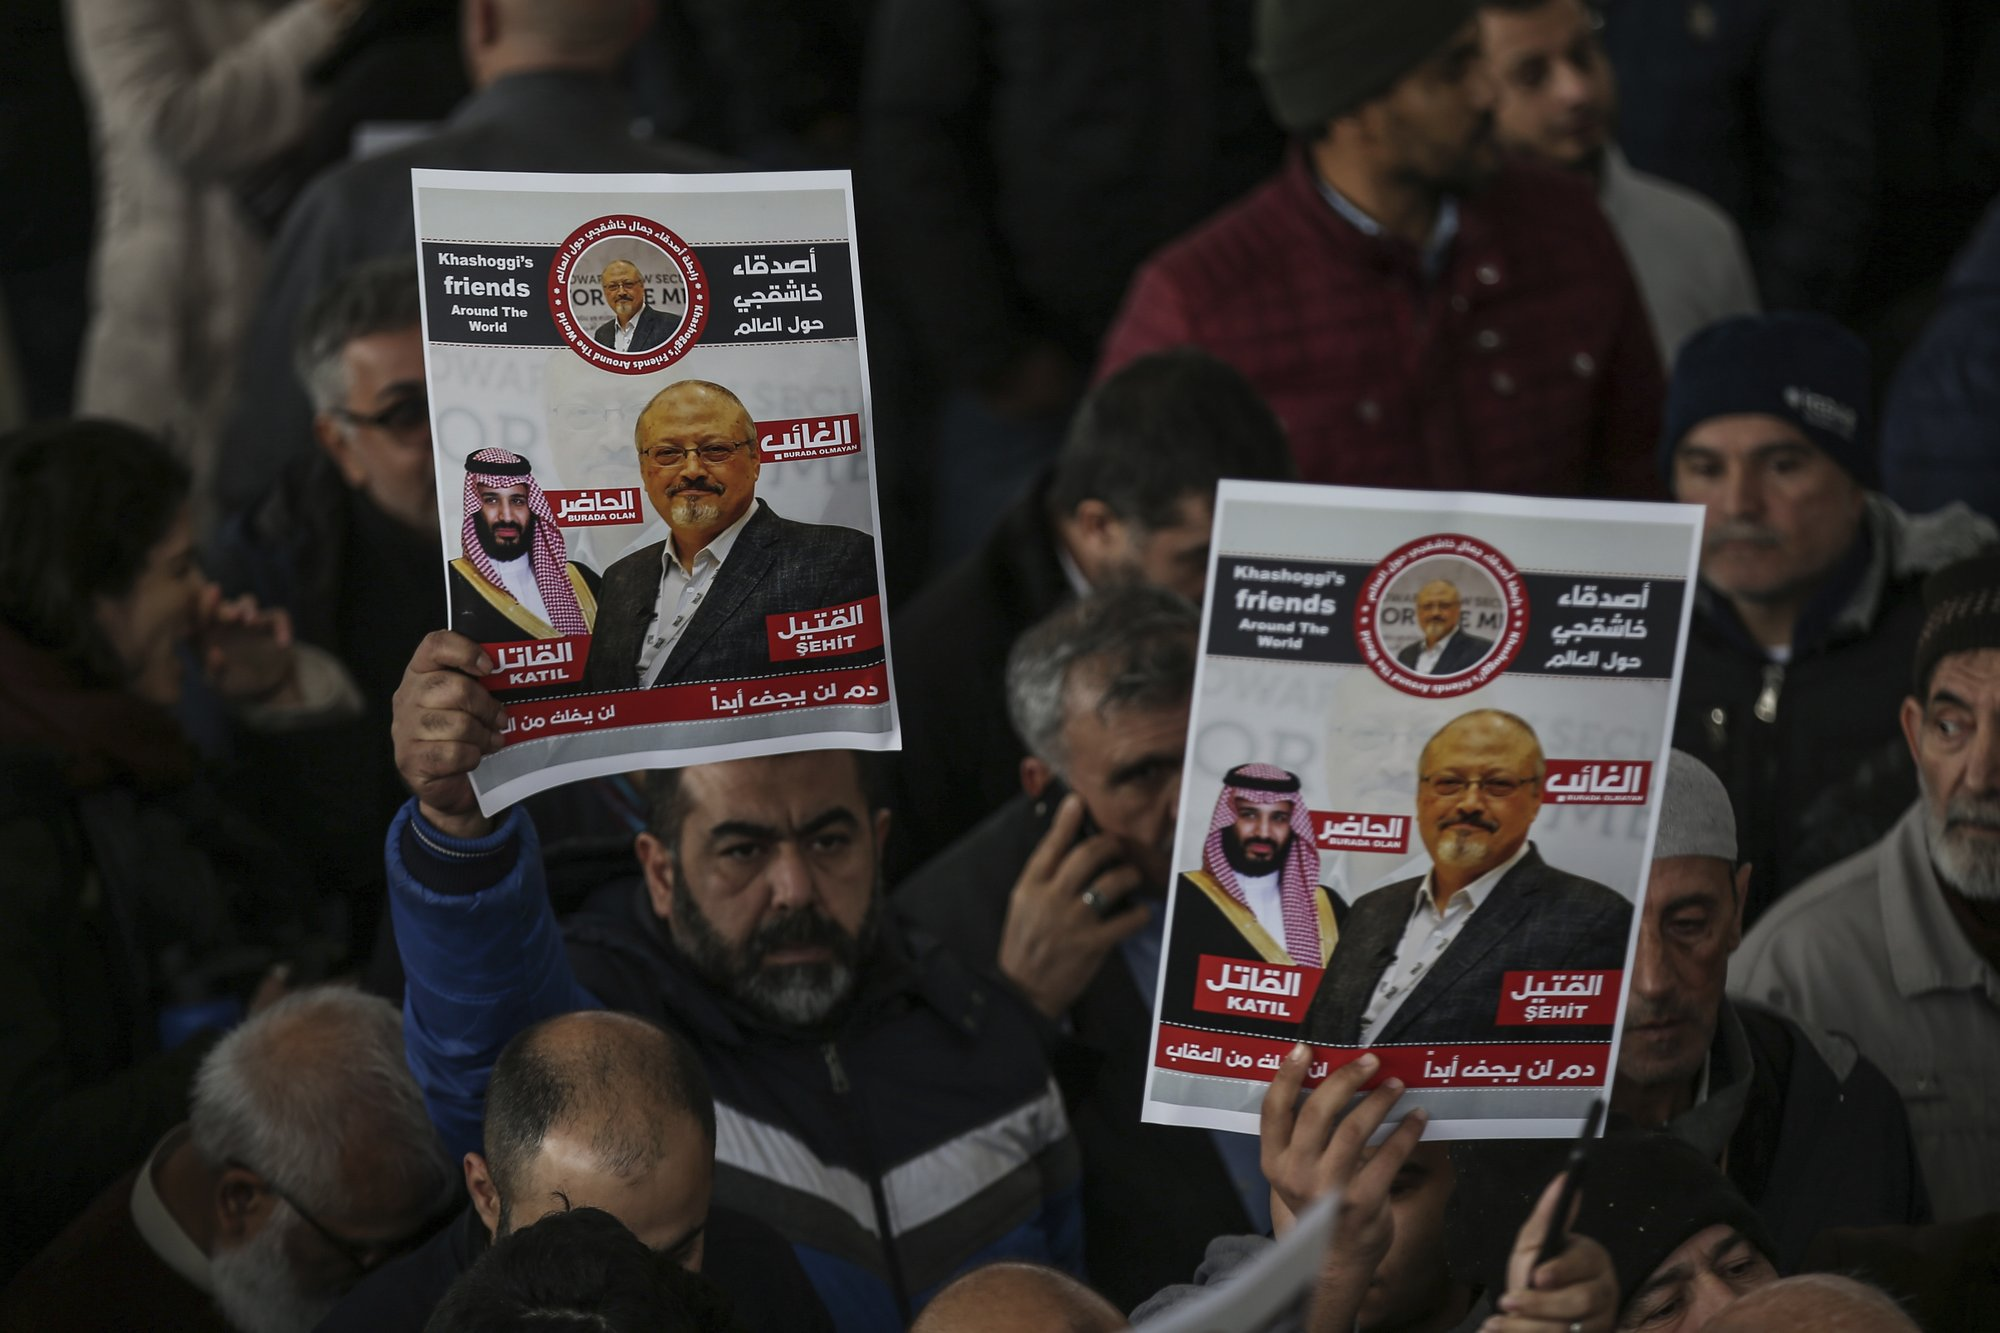 The members of Arab-Turkish Media Association and friends hold posters as they attend funeral prayers in absentia for Saudi writer Jamal Khashoggi who was killed last month in the Saudi Arabia consulate, in Istanbul, on Friday, Nov. 16, 2018. Photo: AP